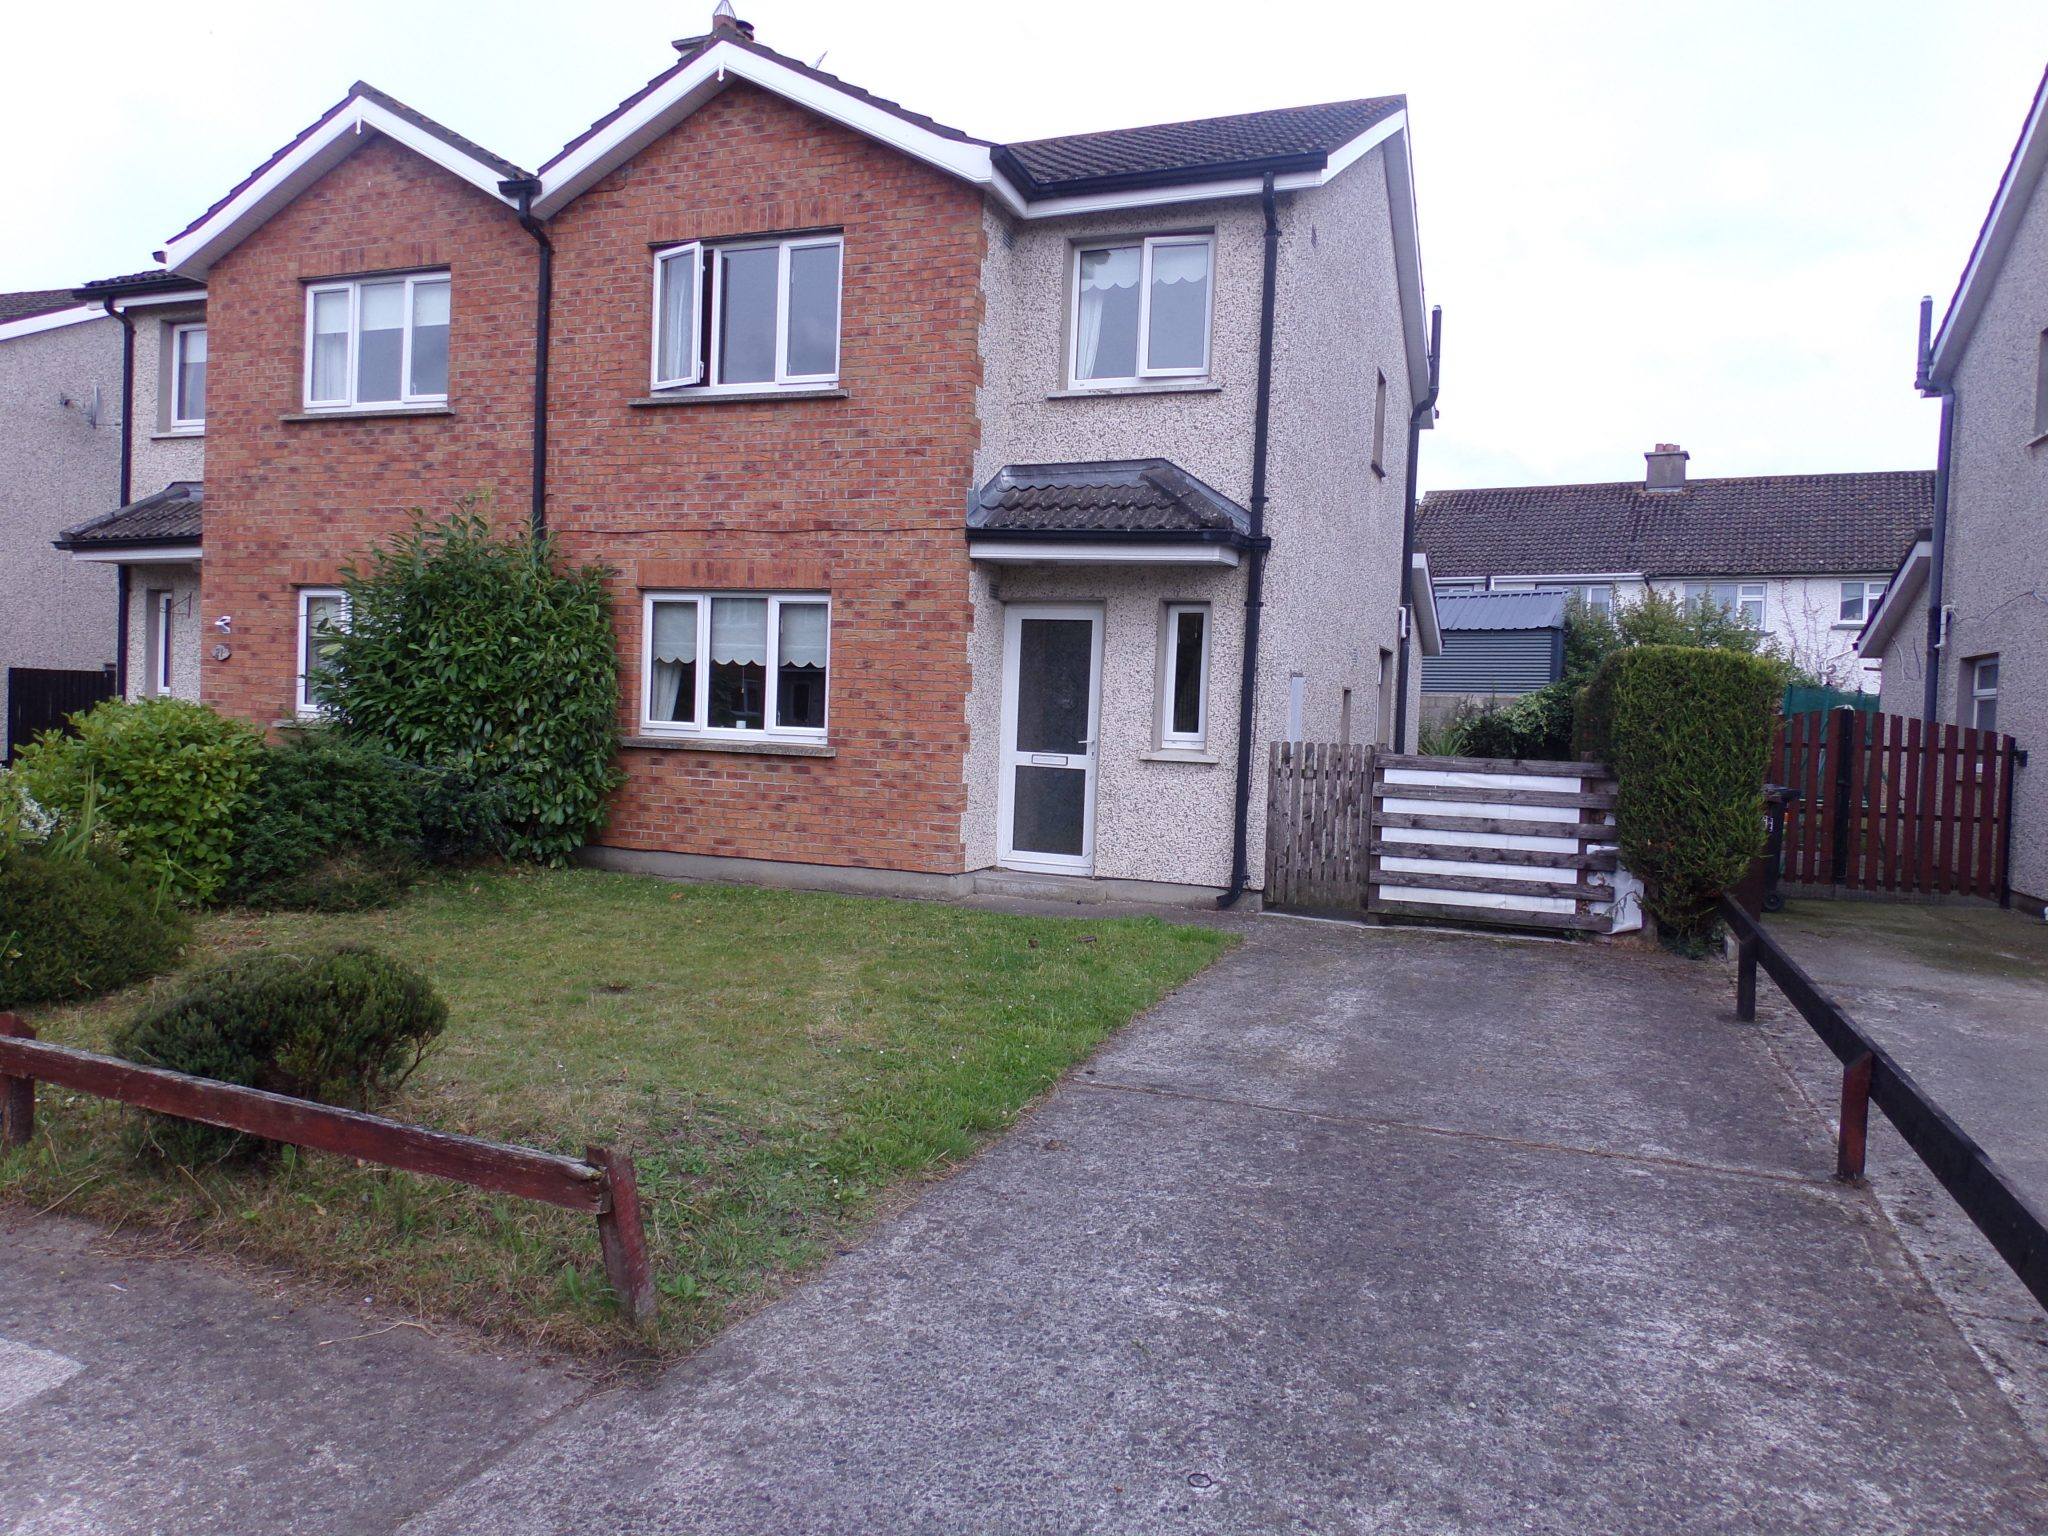 22 Dolmen Court, Browneshill Road, Carlow